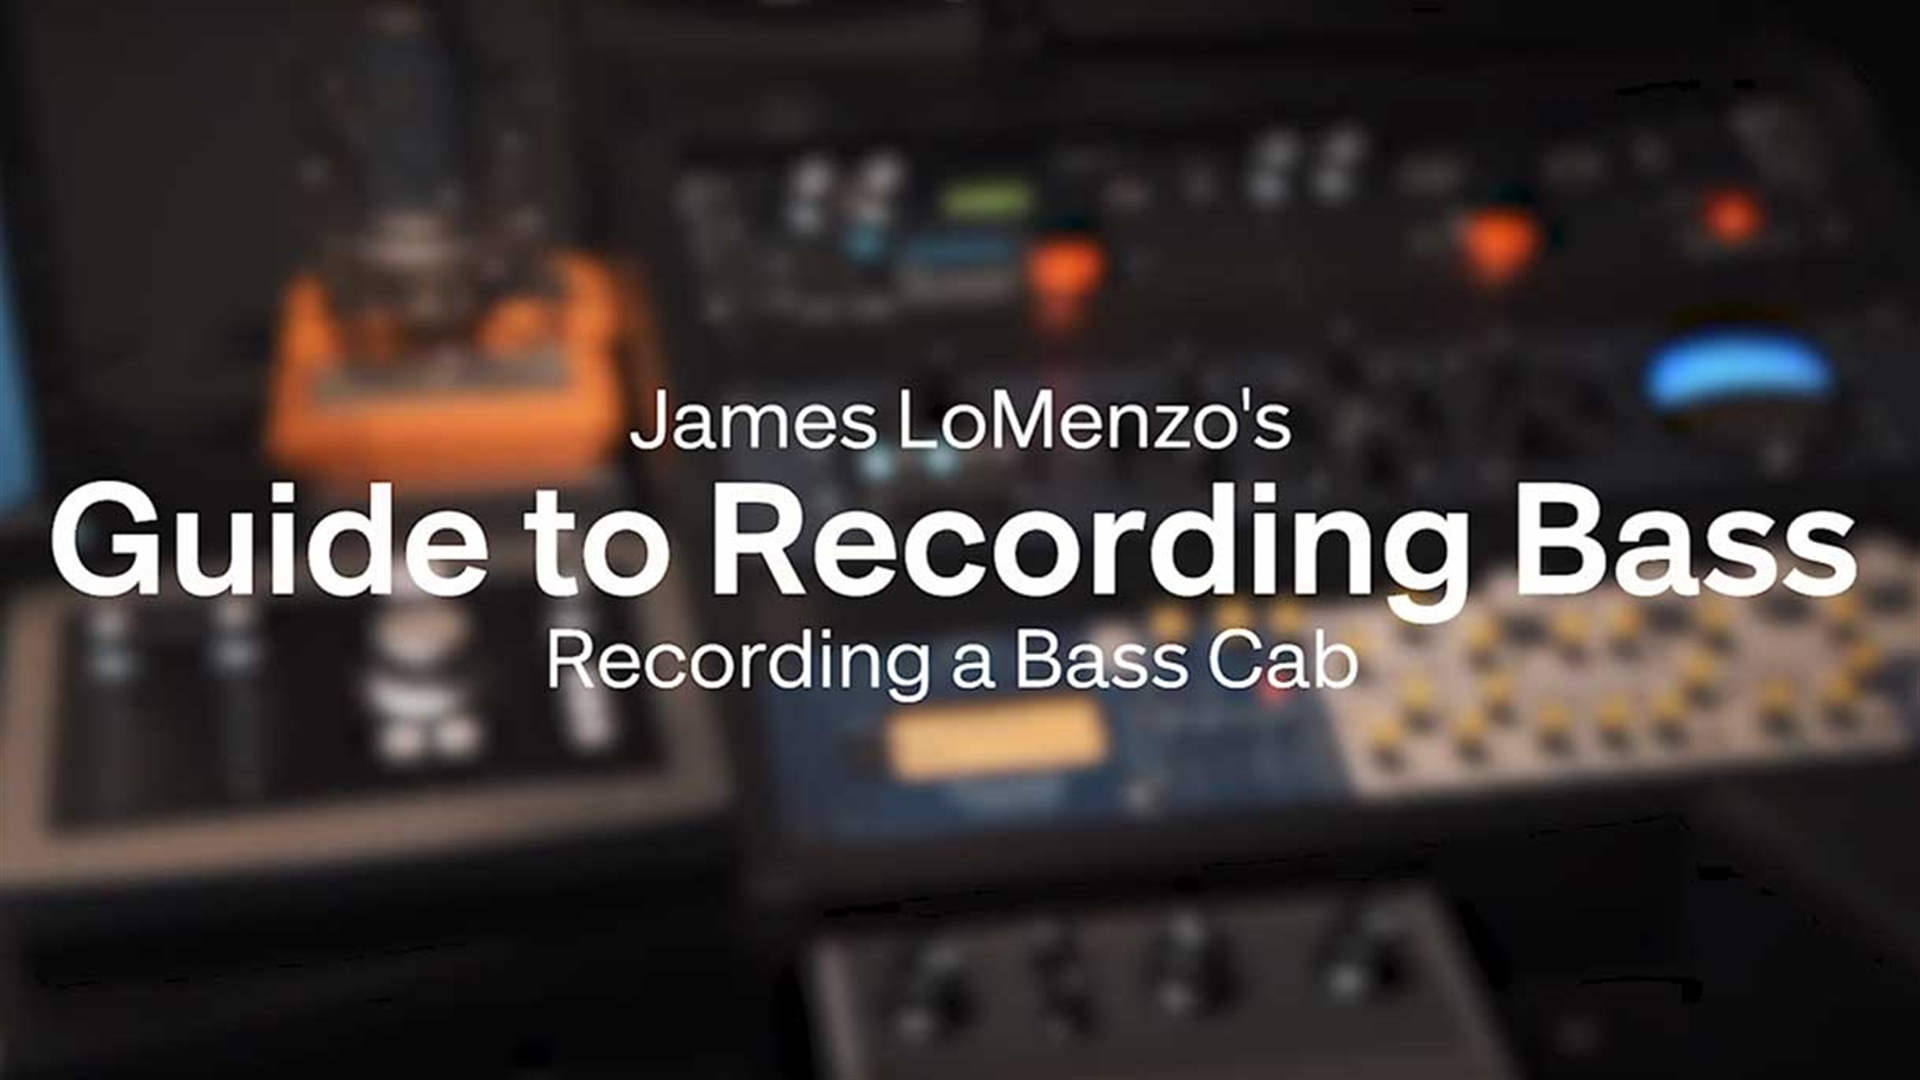 Miking A Bass Cab James Lomenzos Guide To Recording Part 3 Complete Basic Electronics